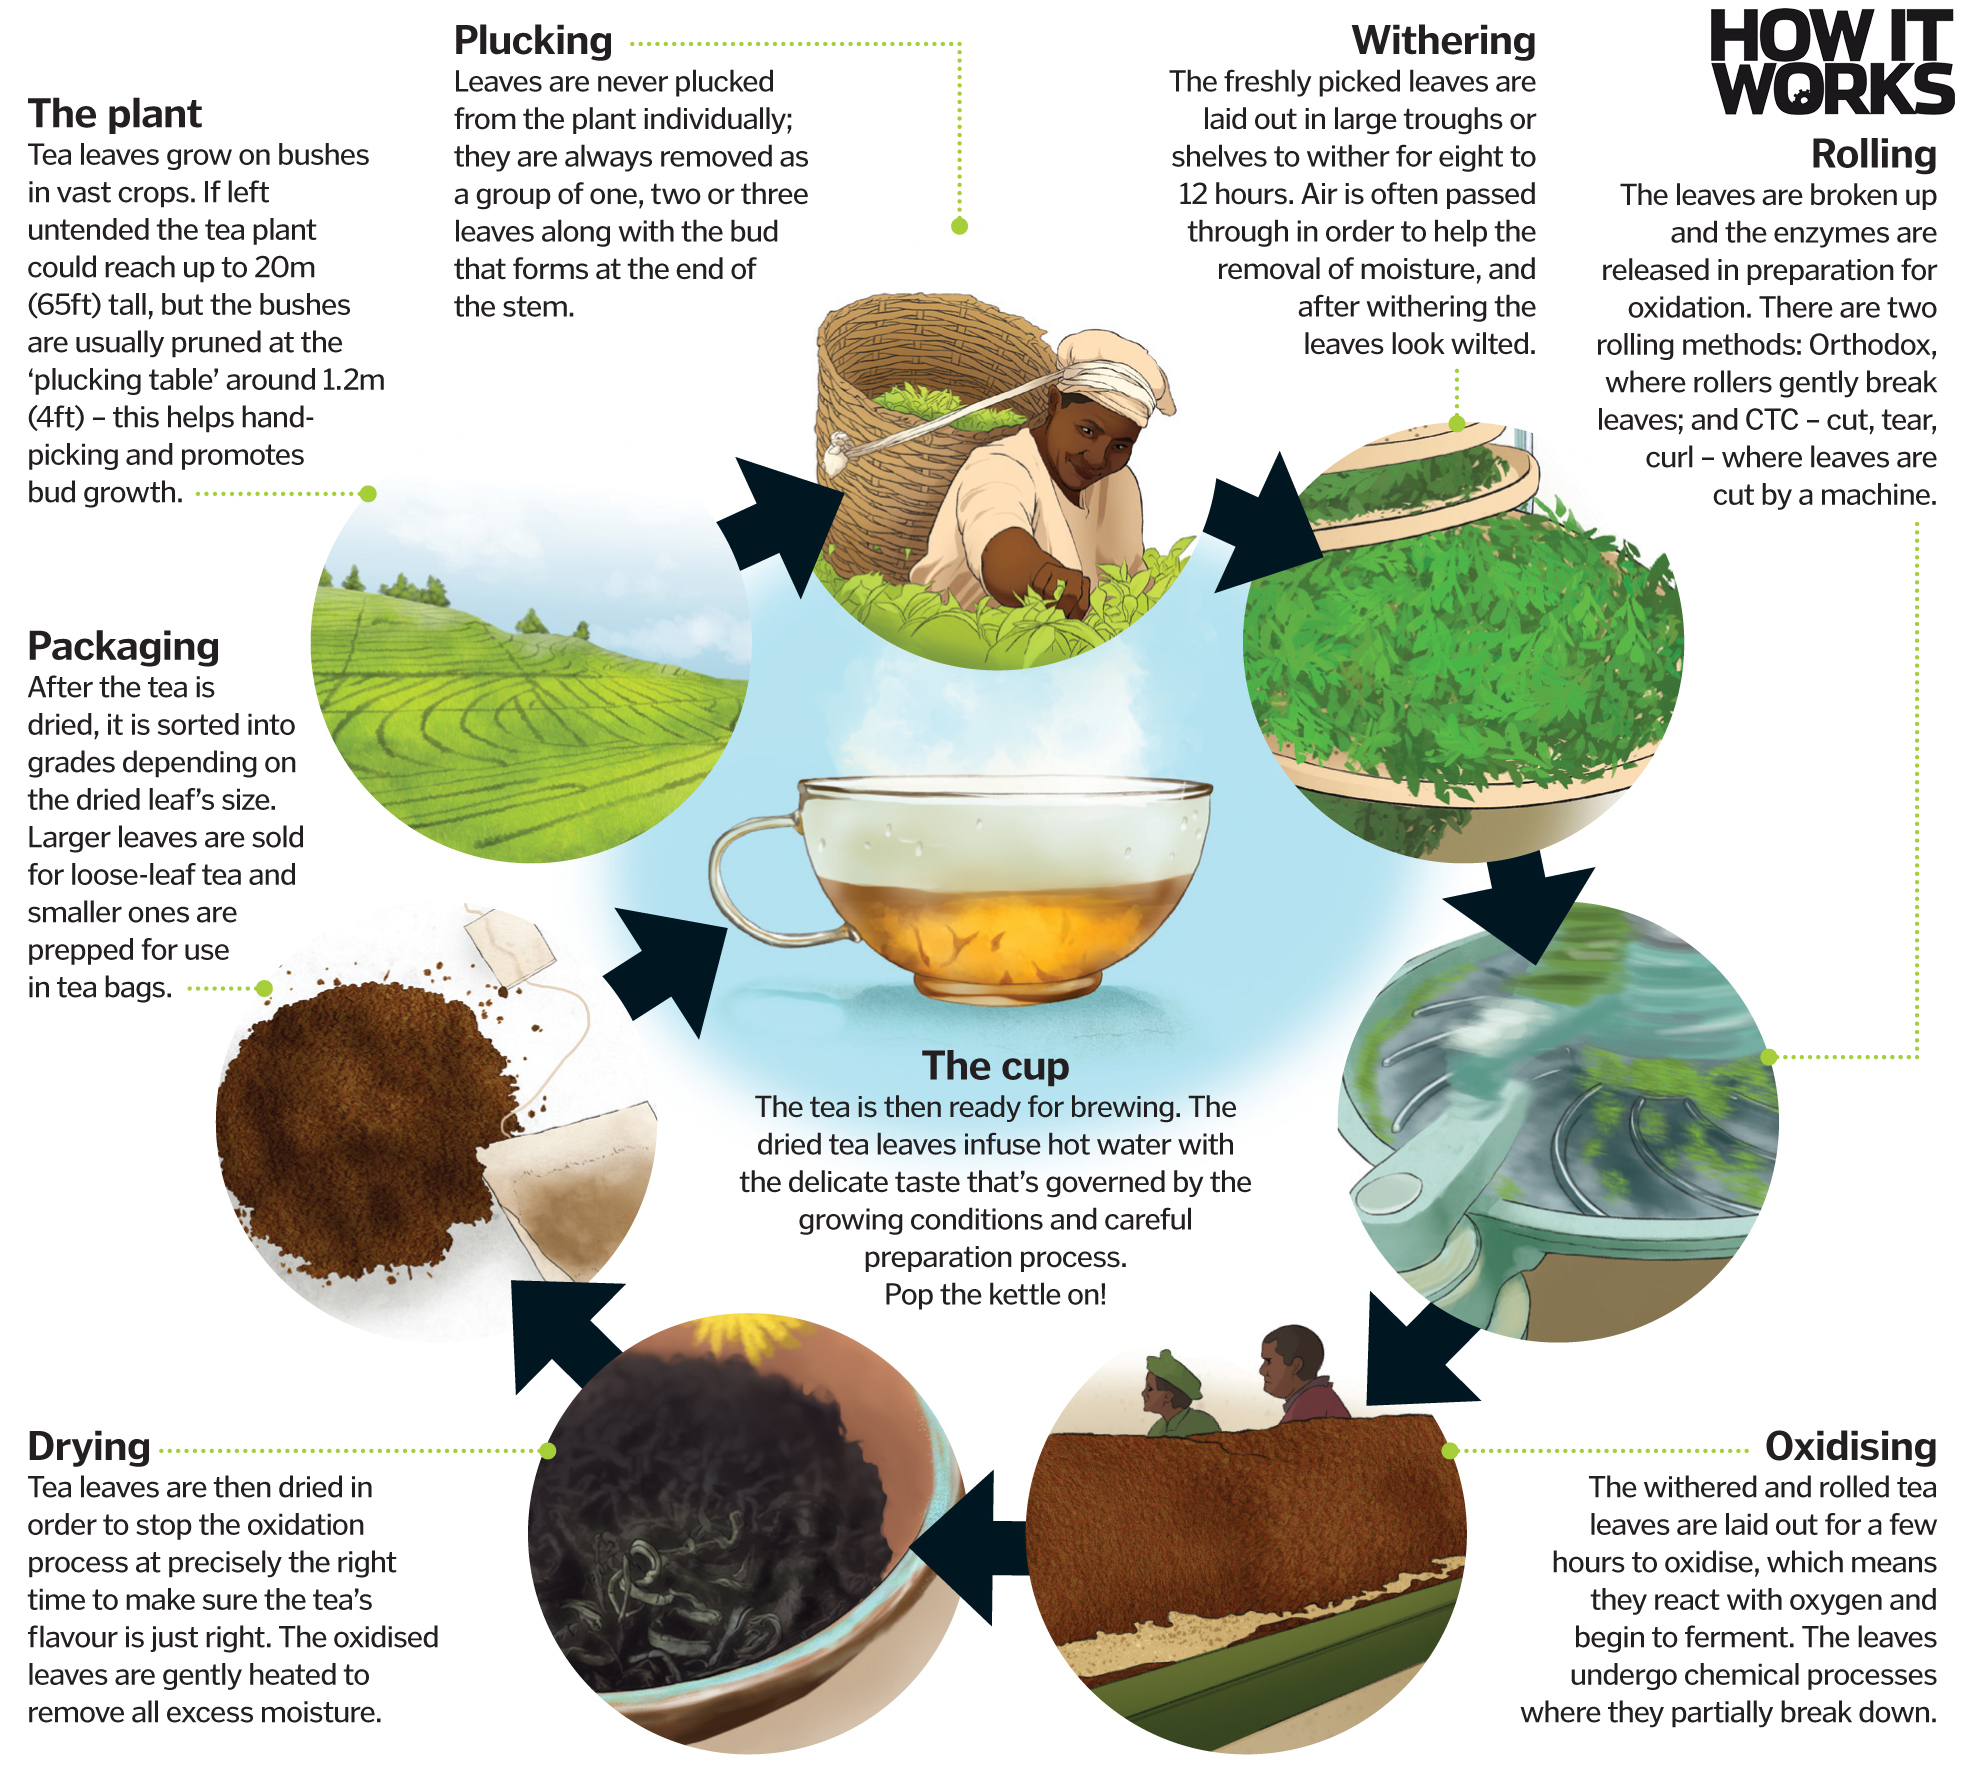 Where Does Tea Come From How It Works